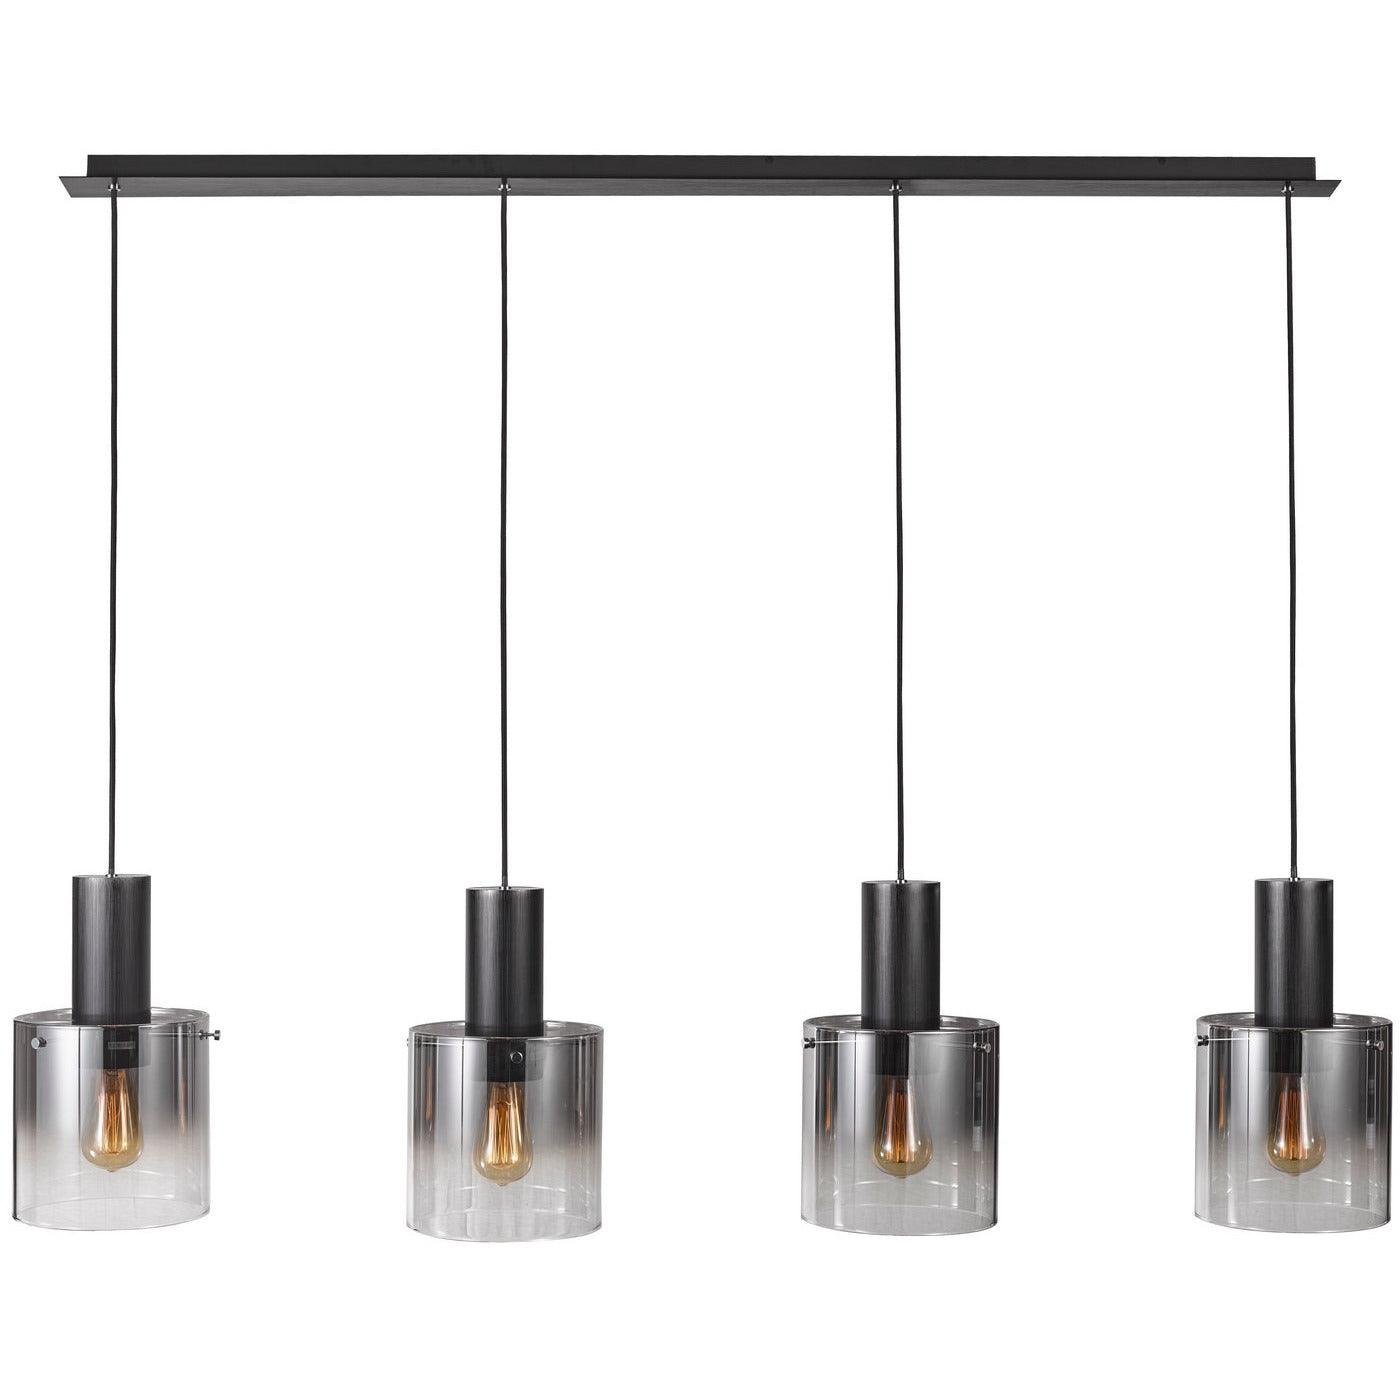 Artcraft Lighting - AC11526SM - Four Light Island Pendant - Henley - Satin Black & Smoke Glass